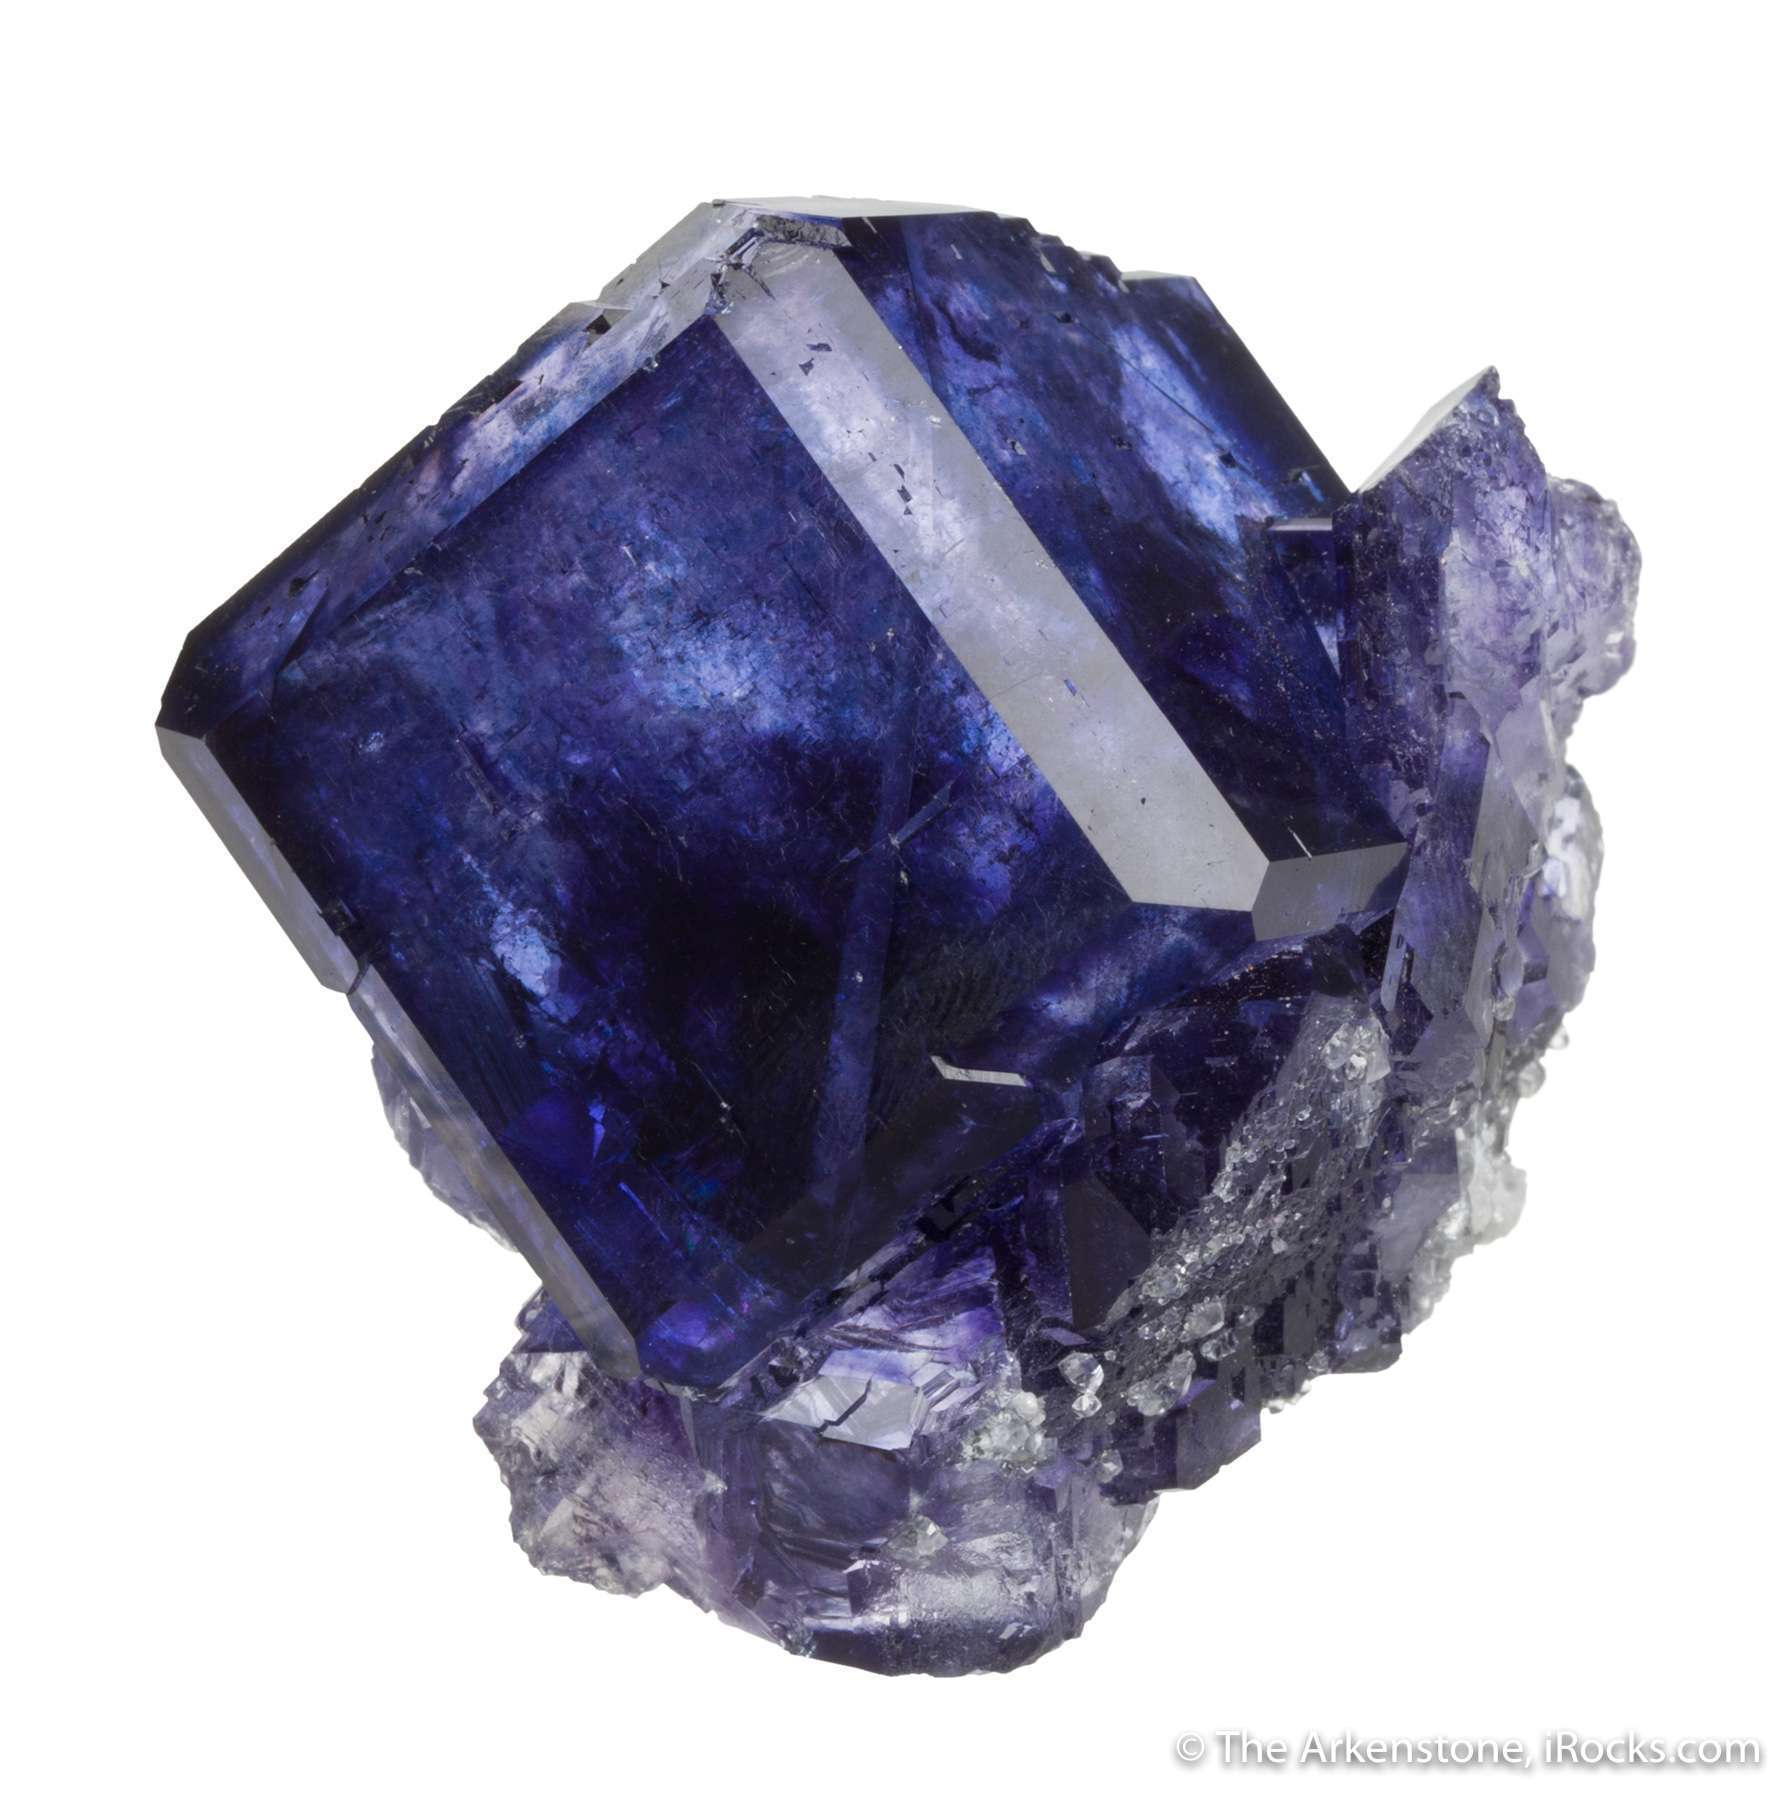 A shockingly gemmy intense purple single crystal showing exceptional